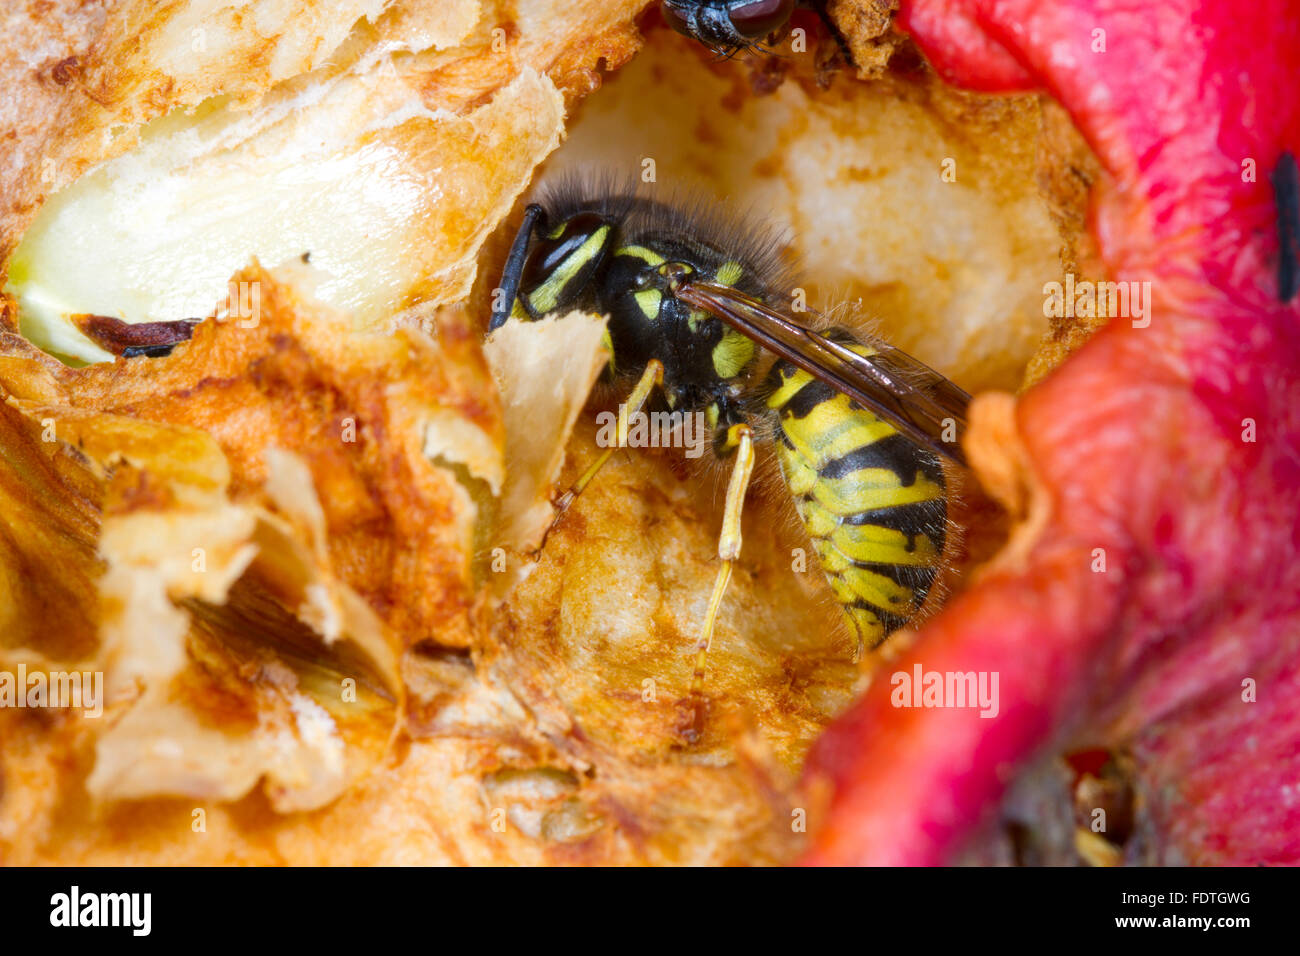 Common wasp (Vespula vulgaris) adult worker, feeding on a damaged apple (Malus domestica) in an Organic orchard. - Stock Image